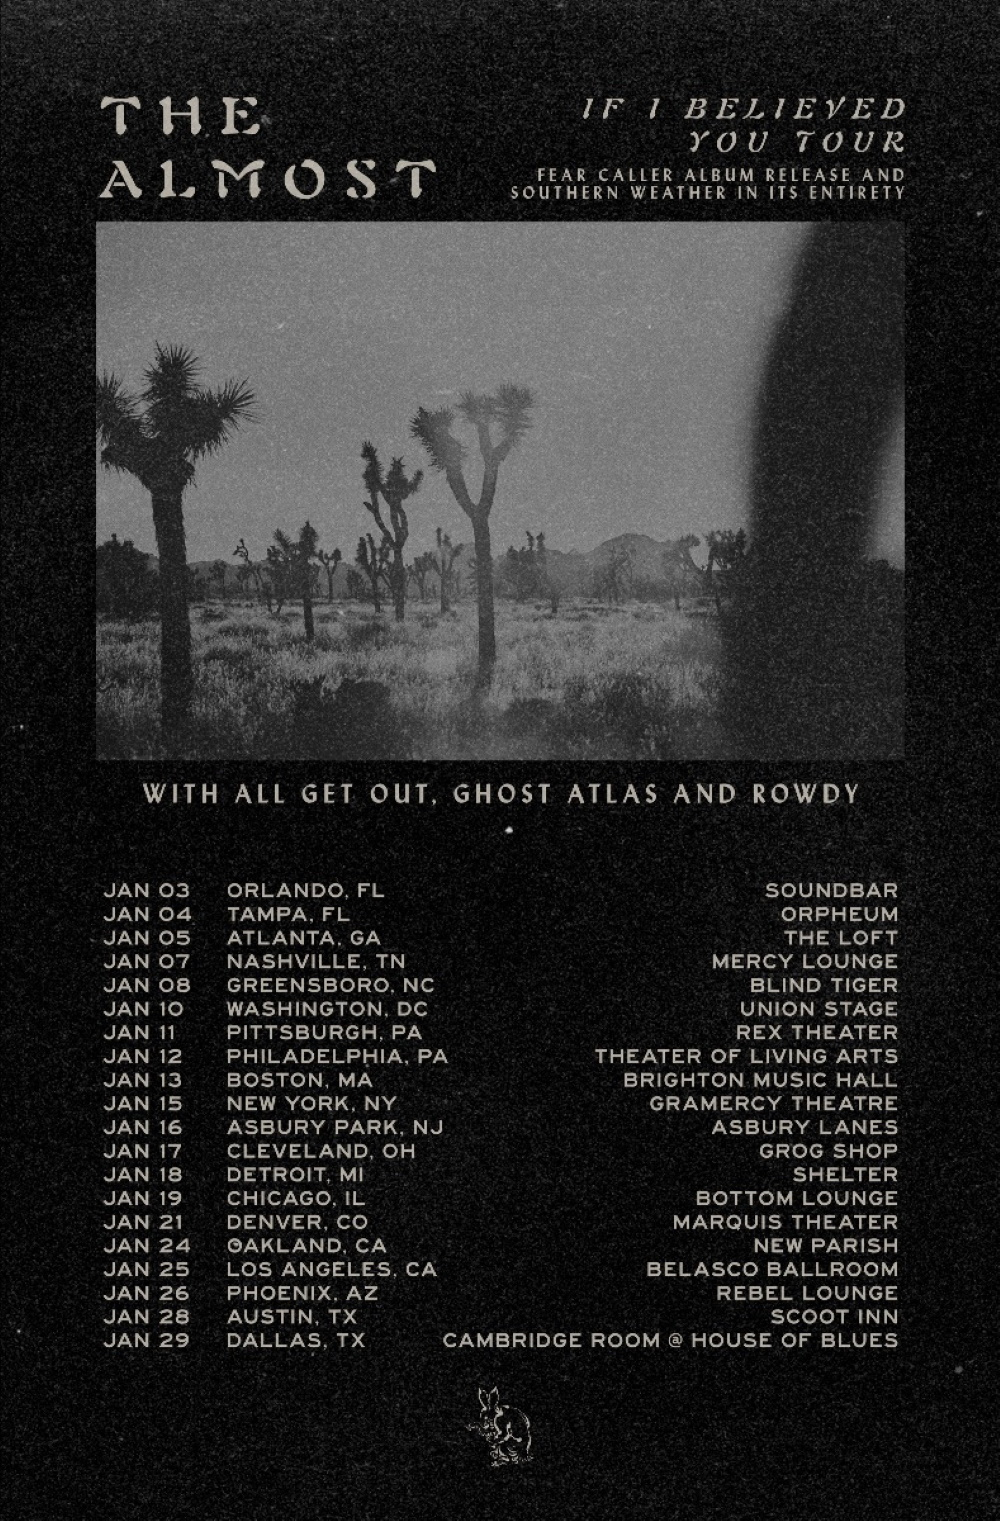 THE ALMOST tour